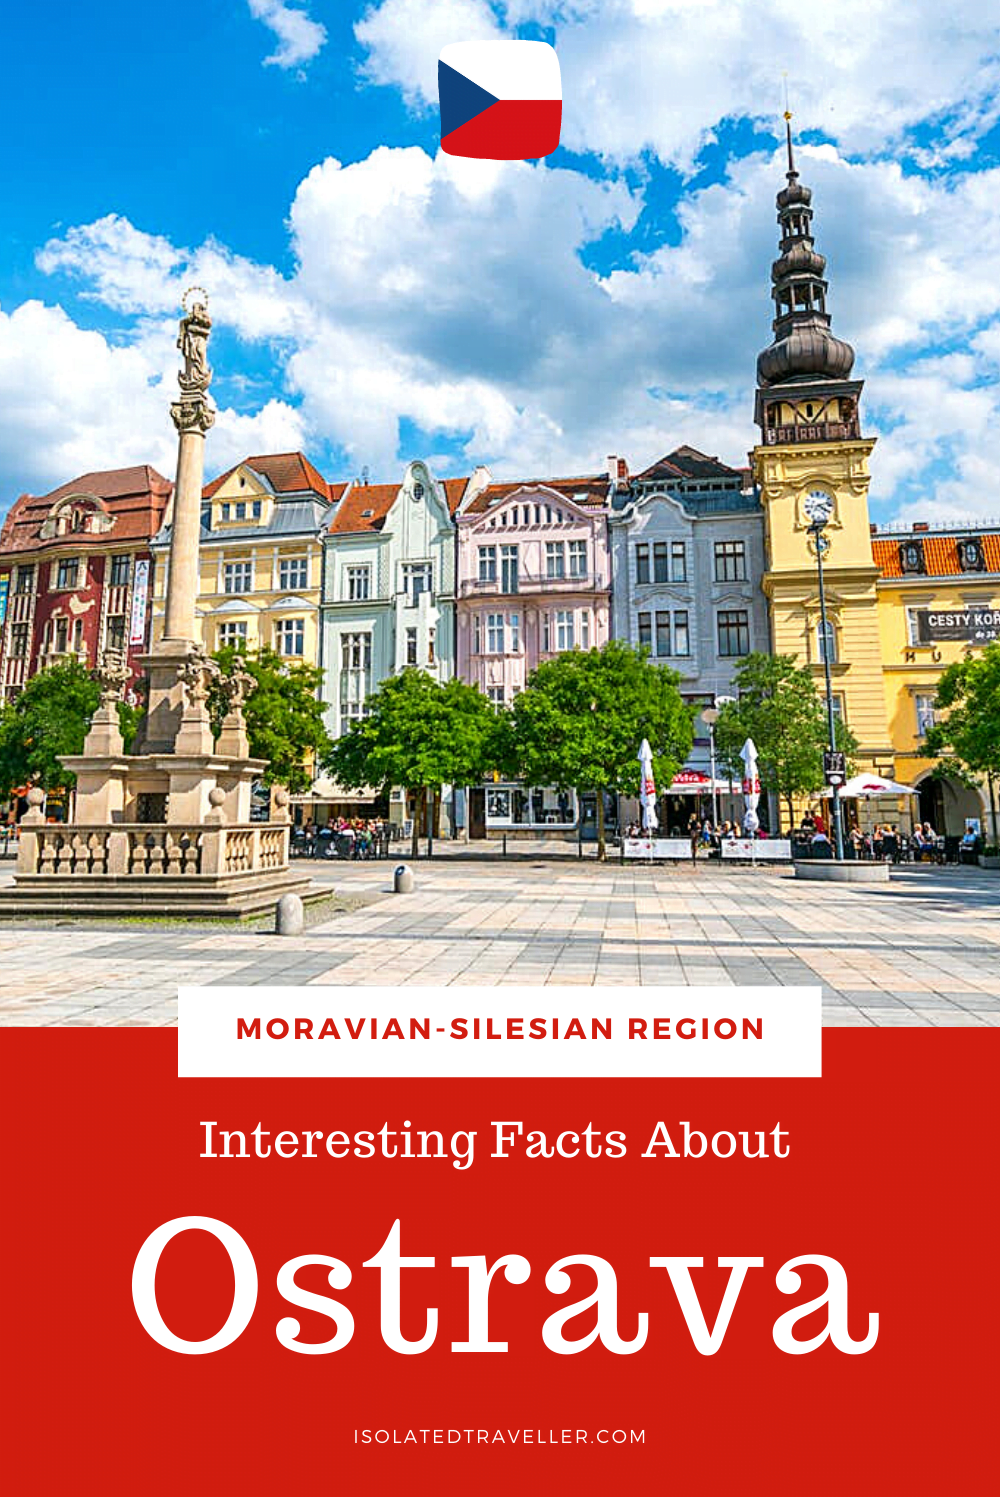 Facts About Ostrava